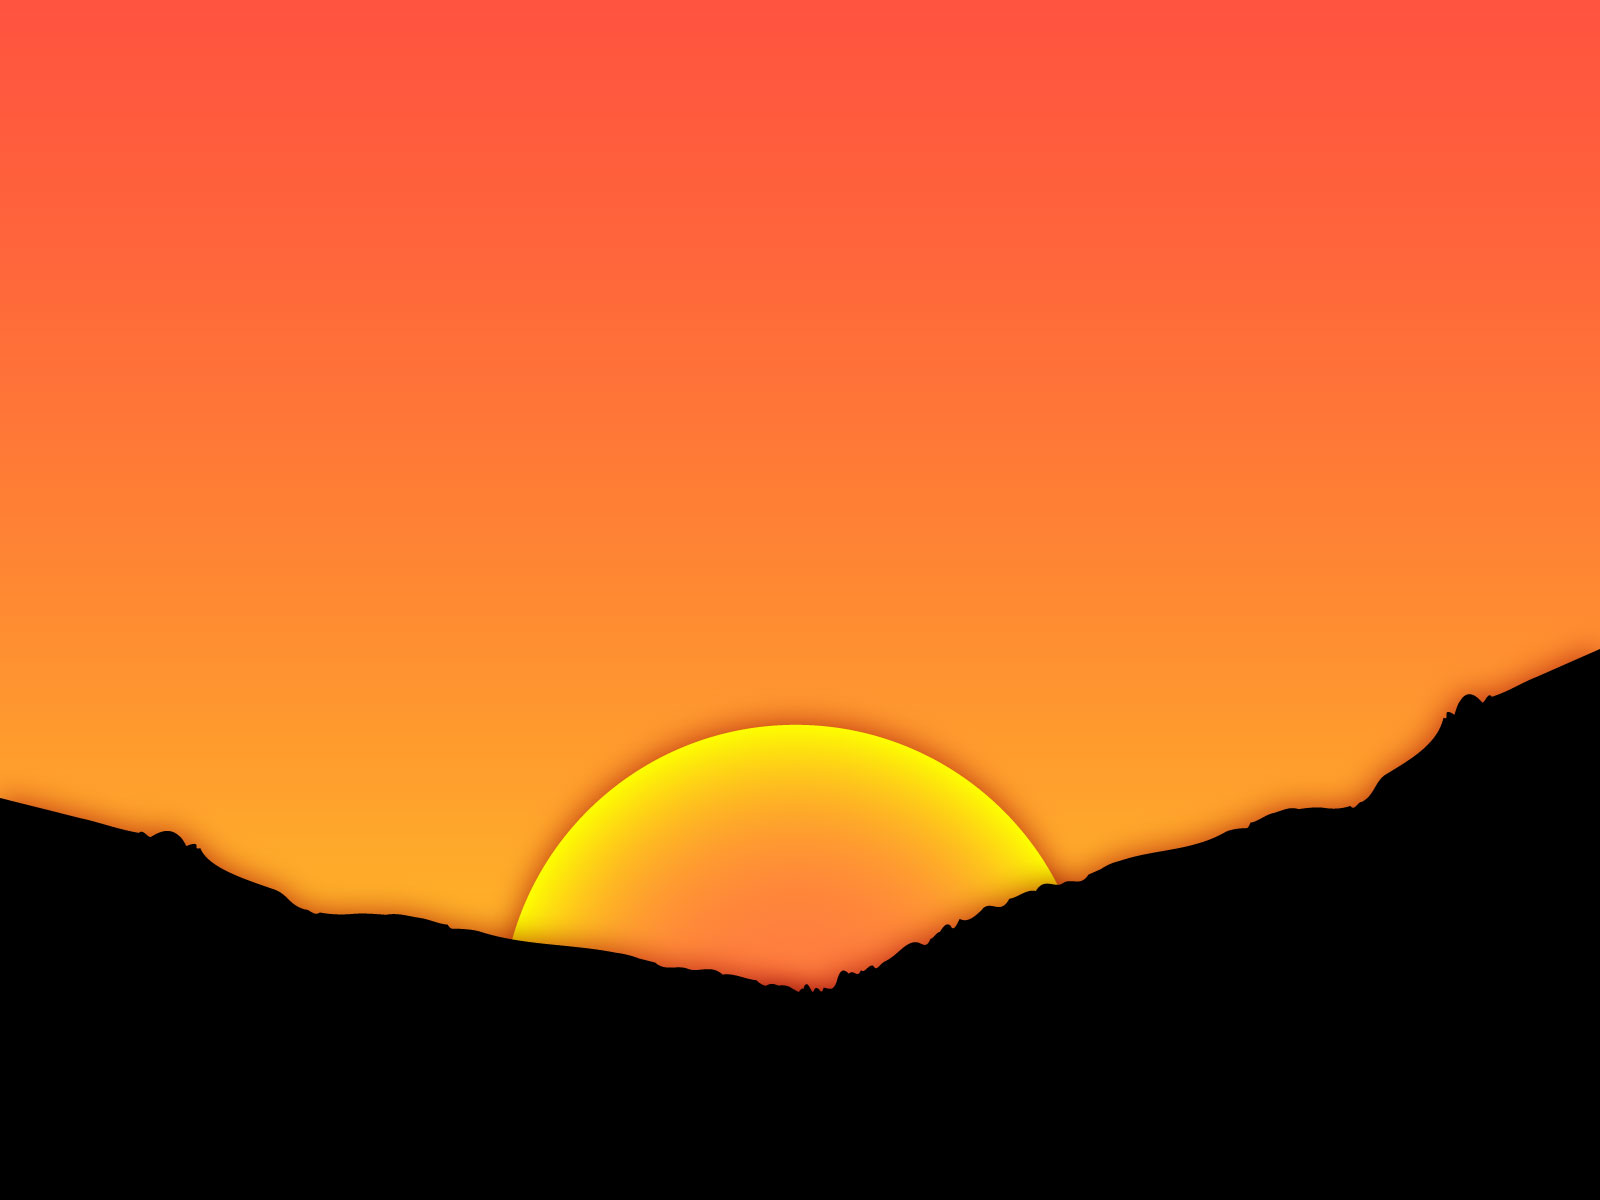 Sunset Cartoon Design for .